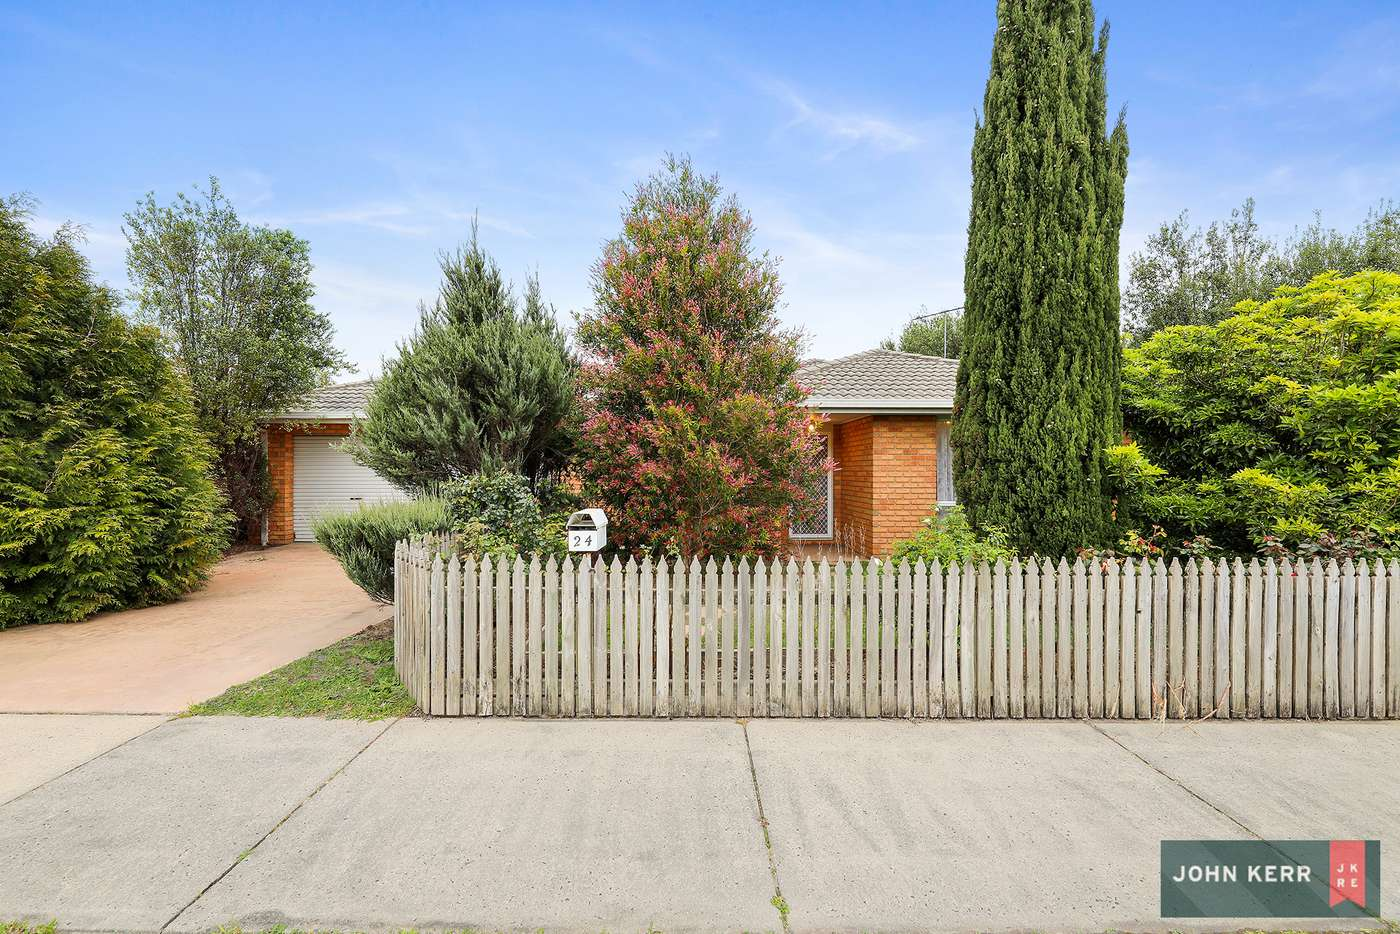 Main view of Homely house listing, 24 Jeeralang Avenue, Newborough VIC 3825